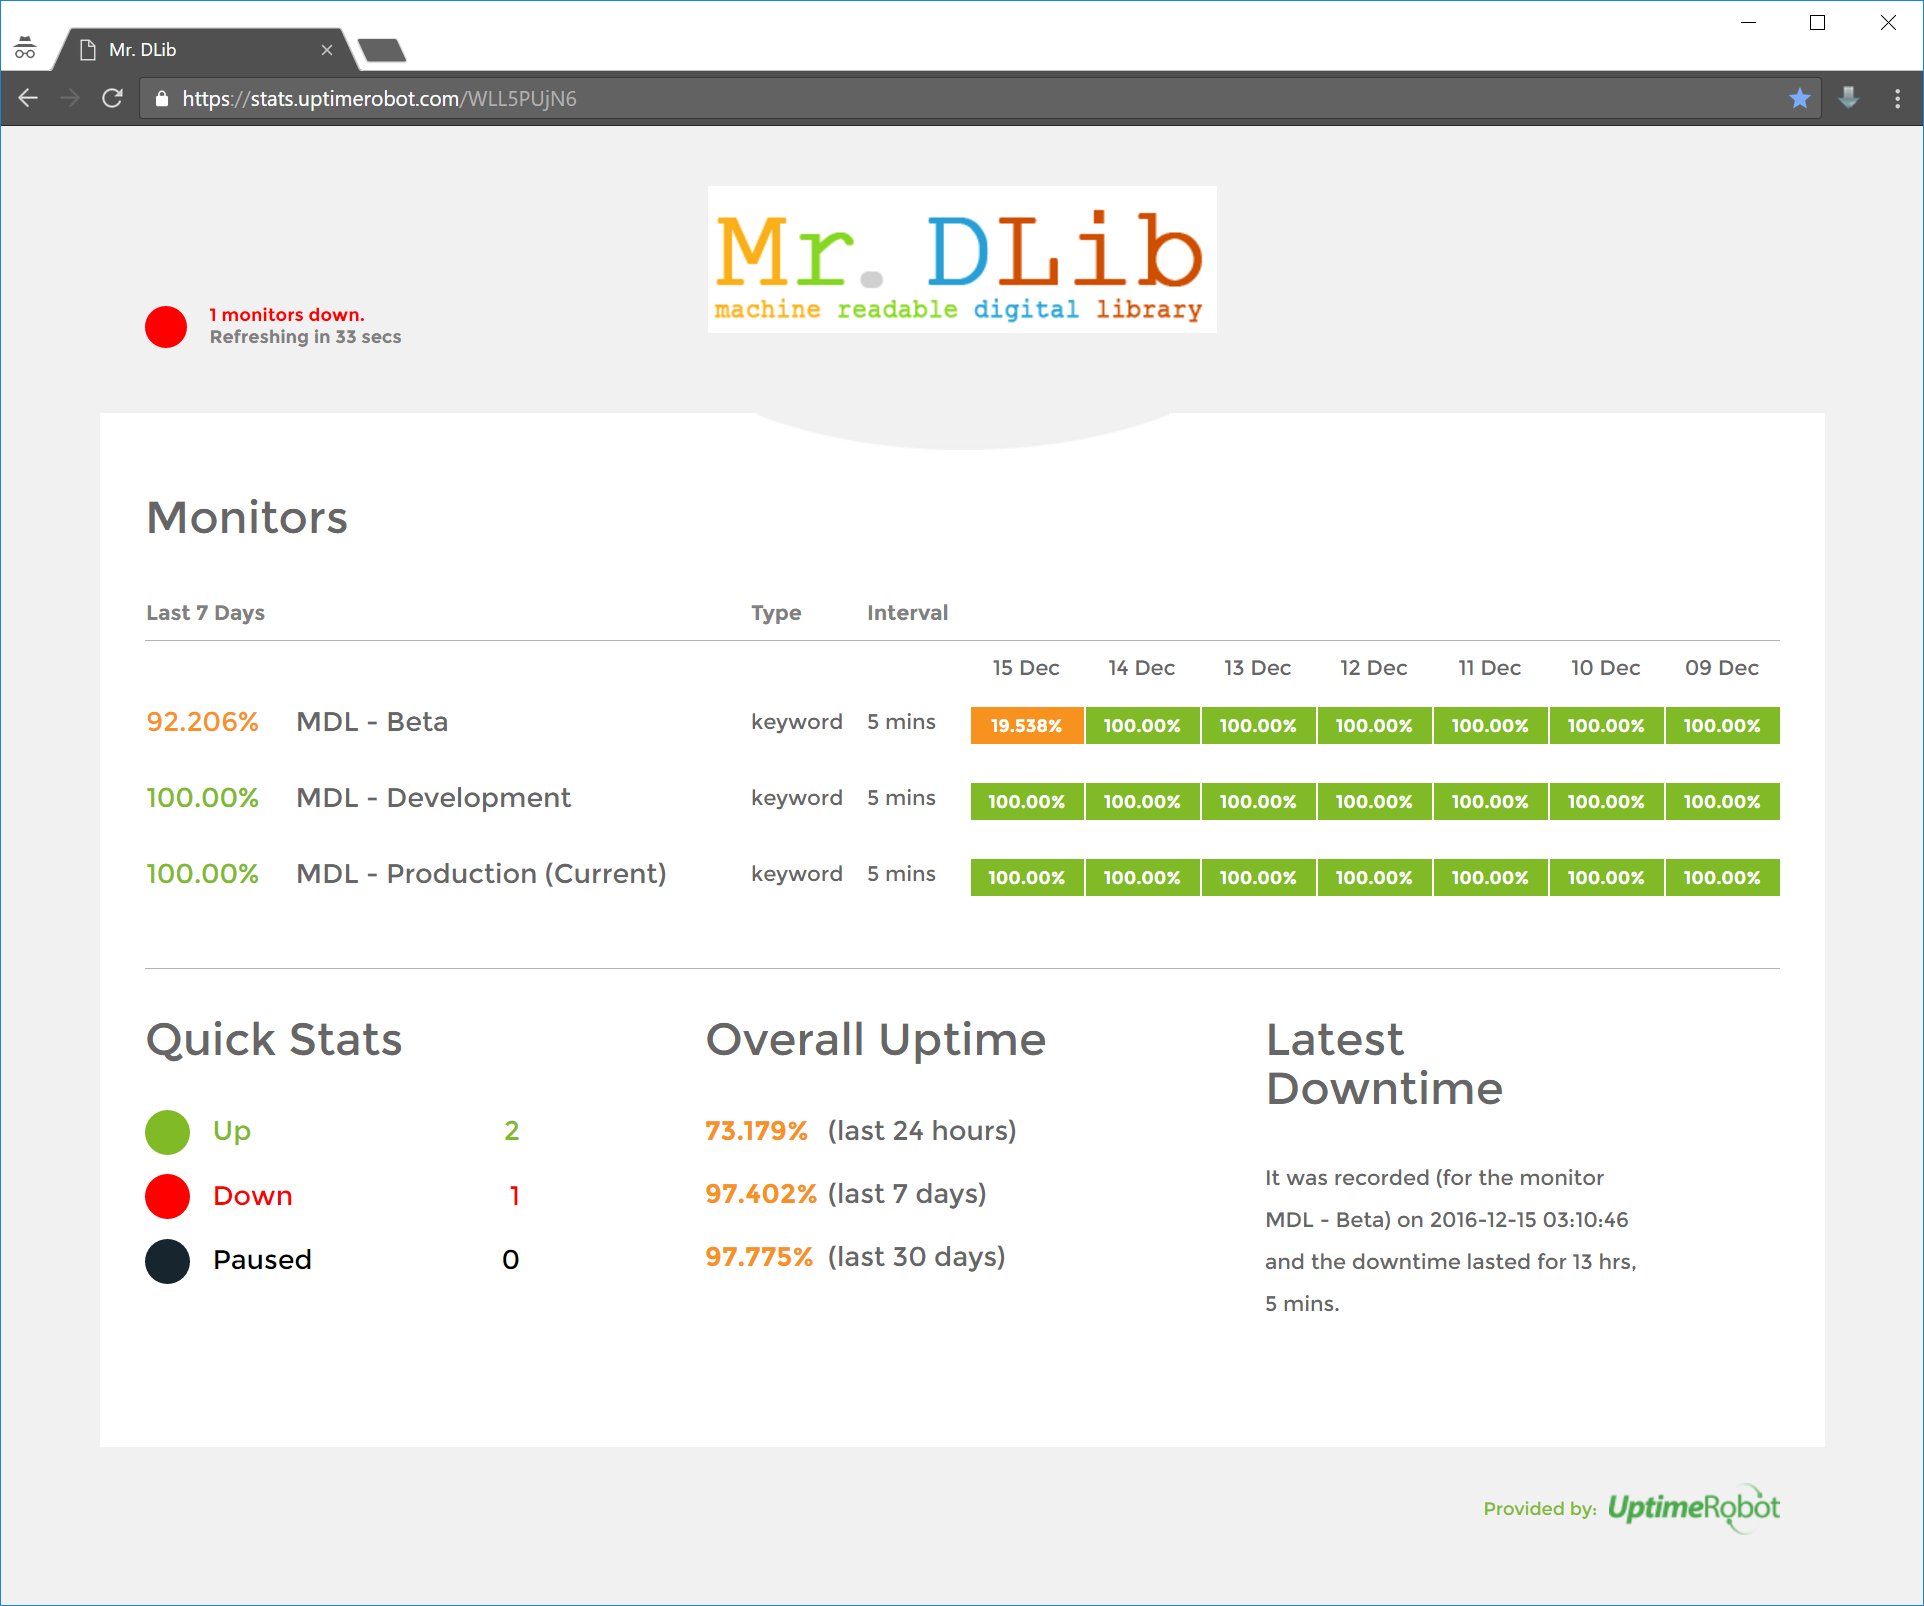 Overview of the status of Mr. DLib's Recommendations-as-a-Service